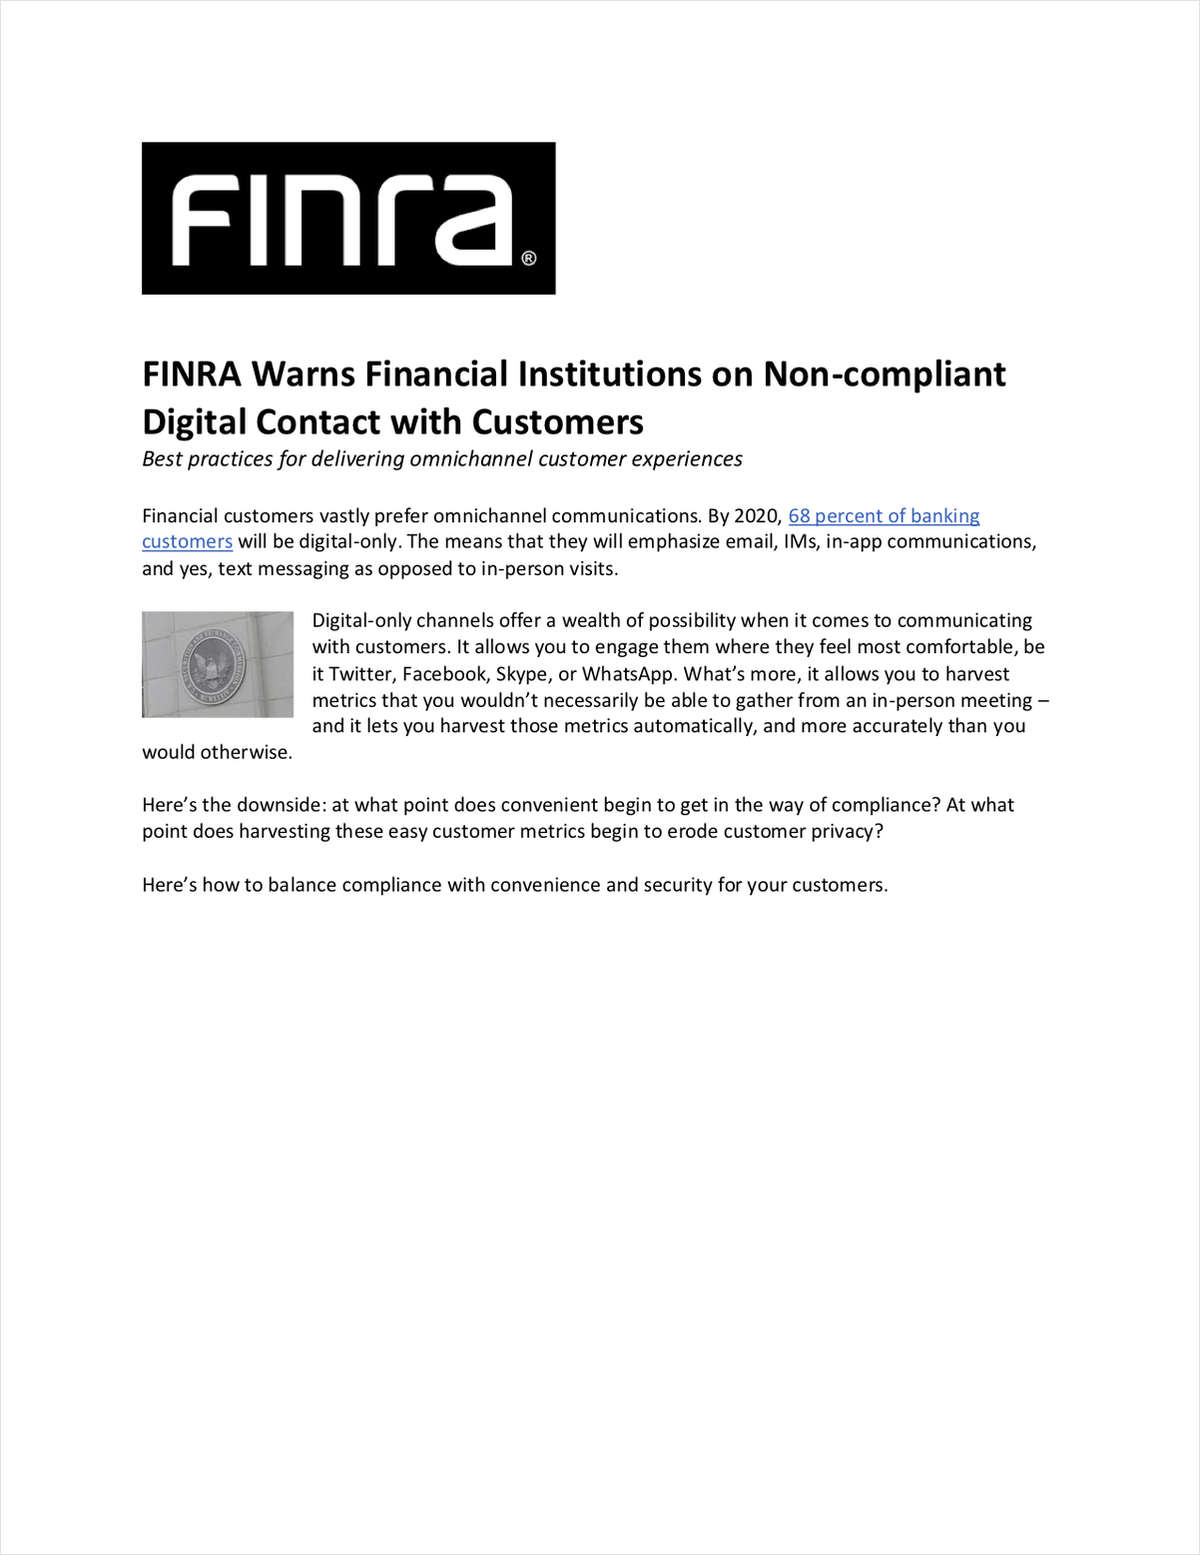 FINRA Warns Financial Institutions on Non-compliant Digital Contact with Customers